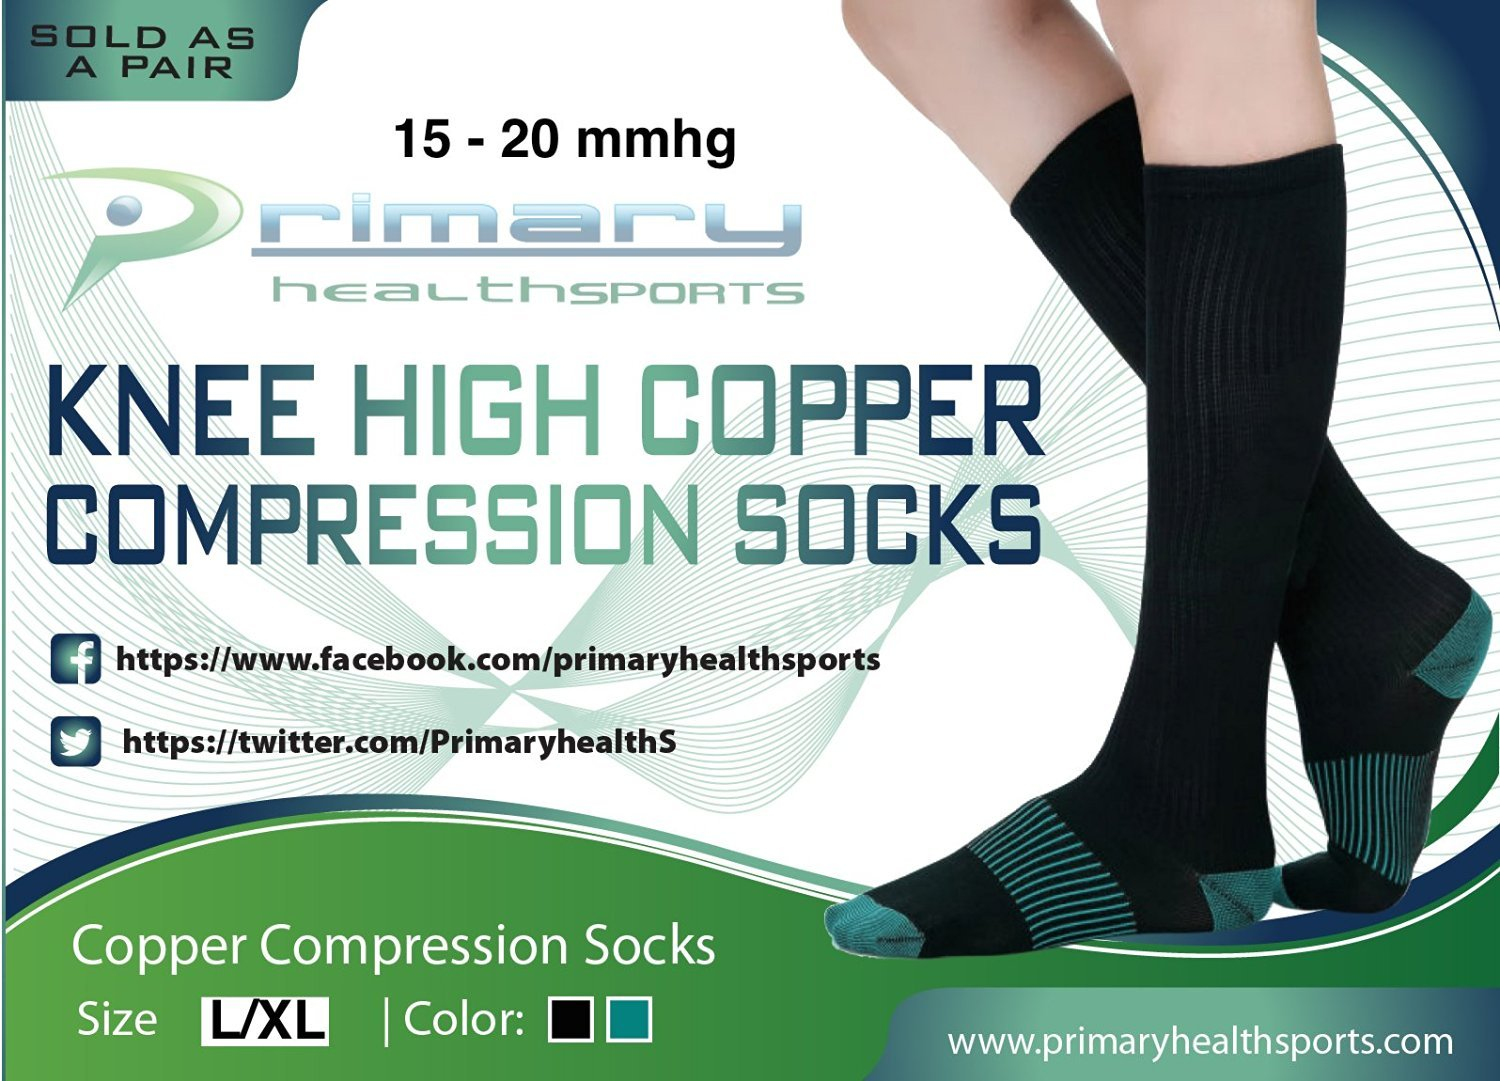 Primary Health Sports Best Compression Copper Socks - Great for Men, Women, Travelers, Nurses, Pregnancy - Protect & Support your Calves, Ankles, and Feet. Graduated Compression. 15-20mmhg by Primary Health Sports (Image #8)